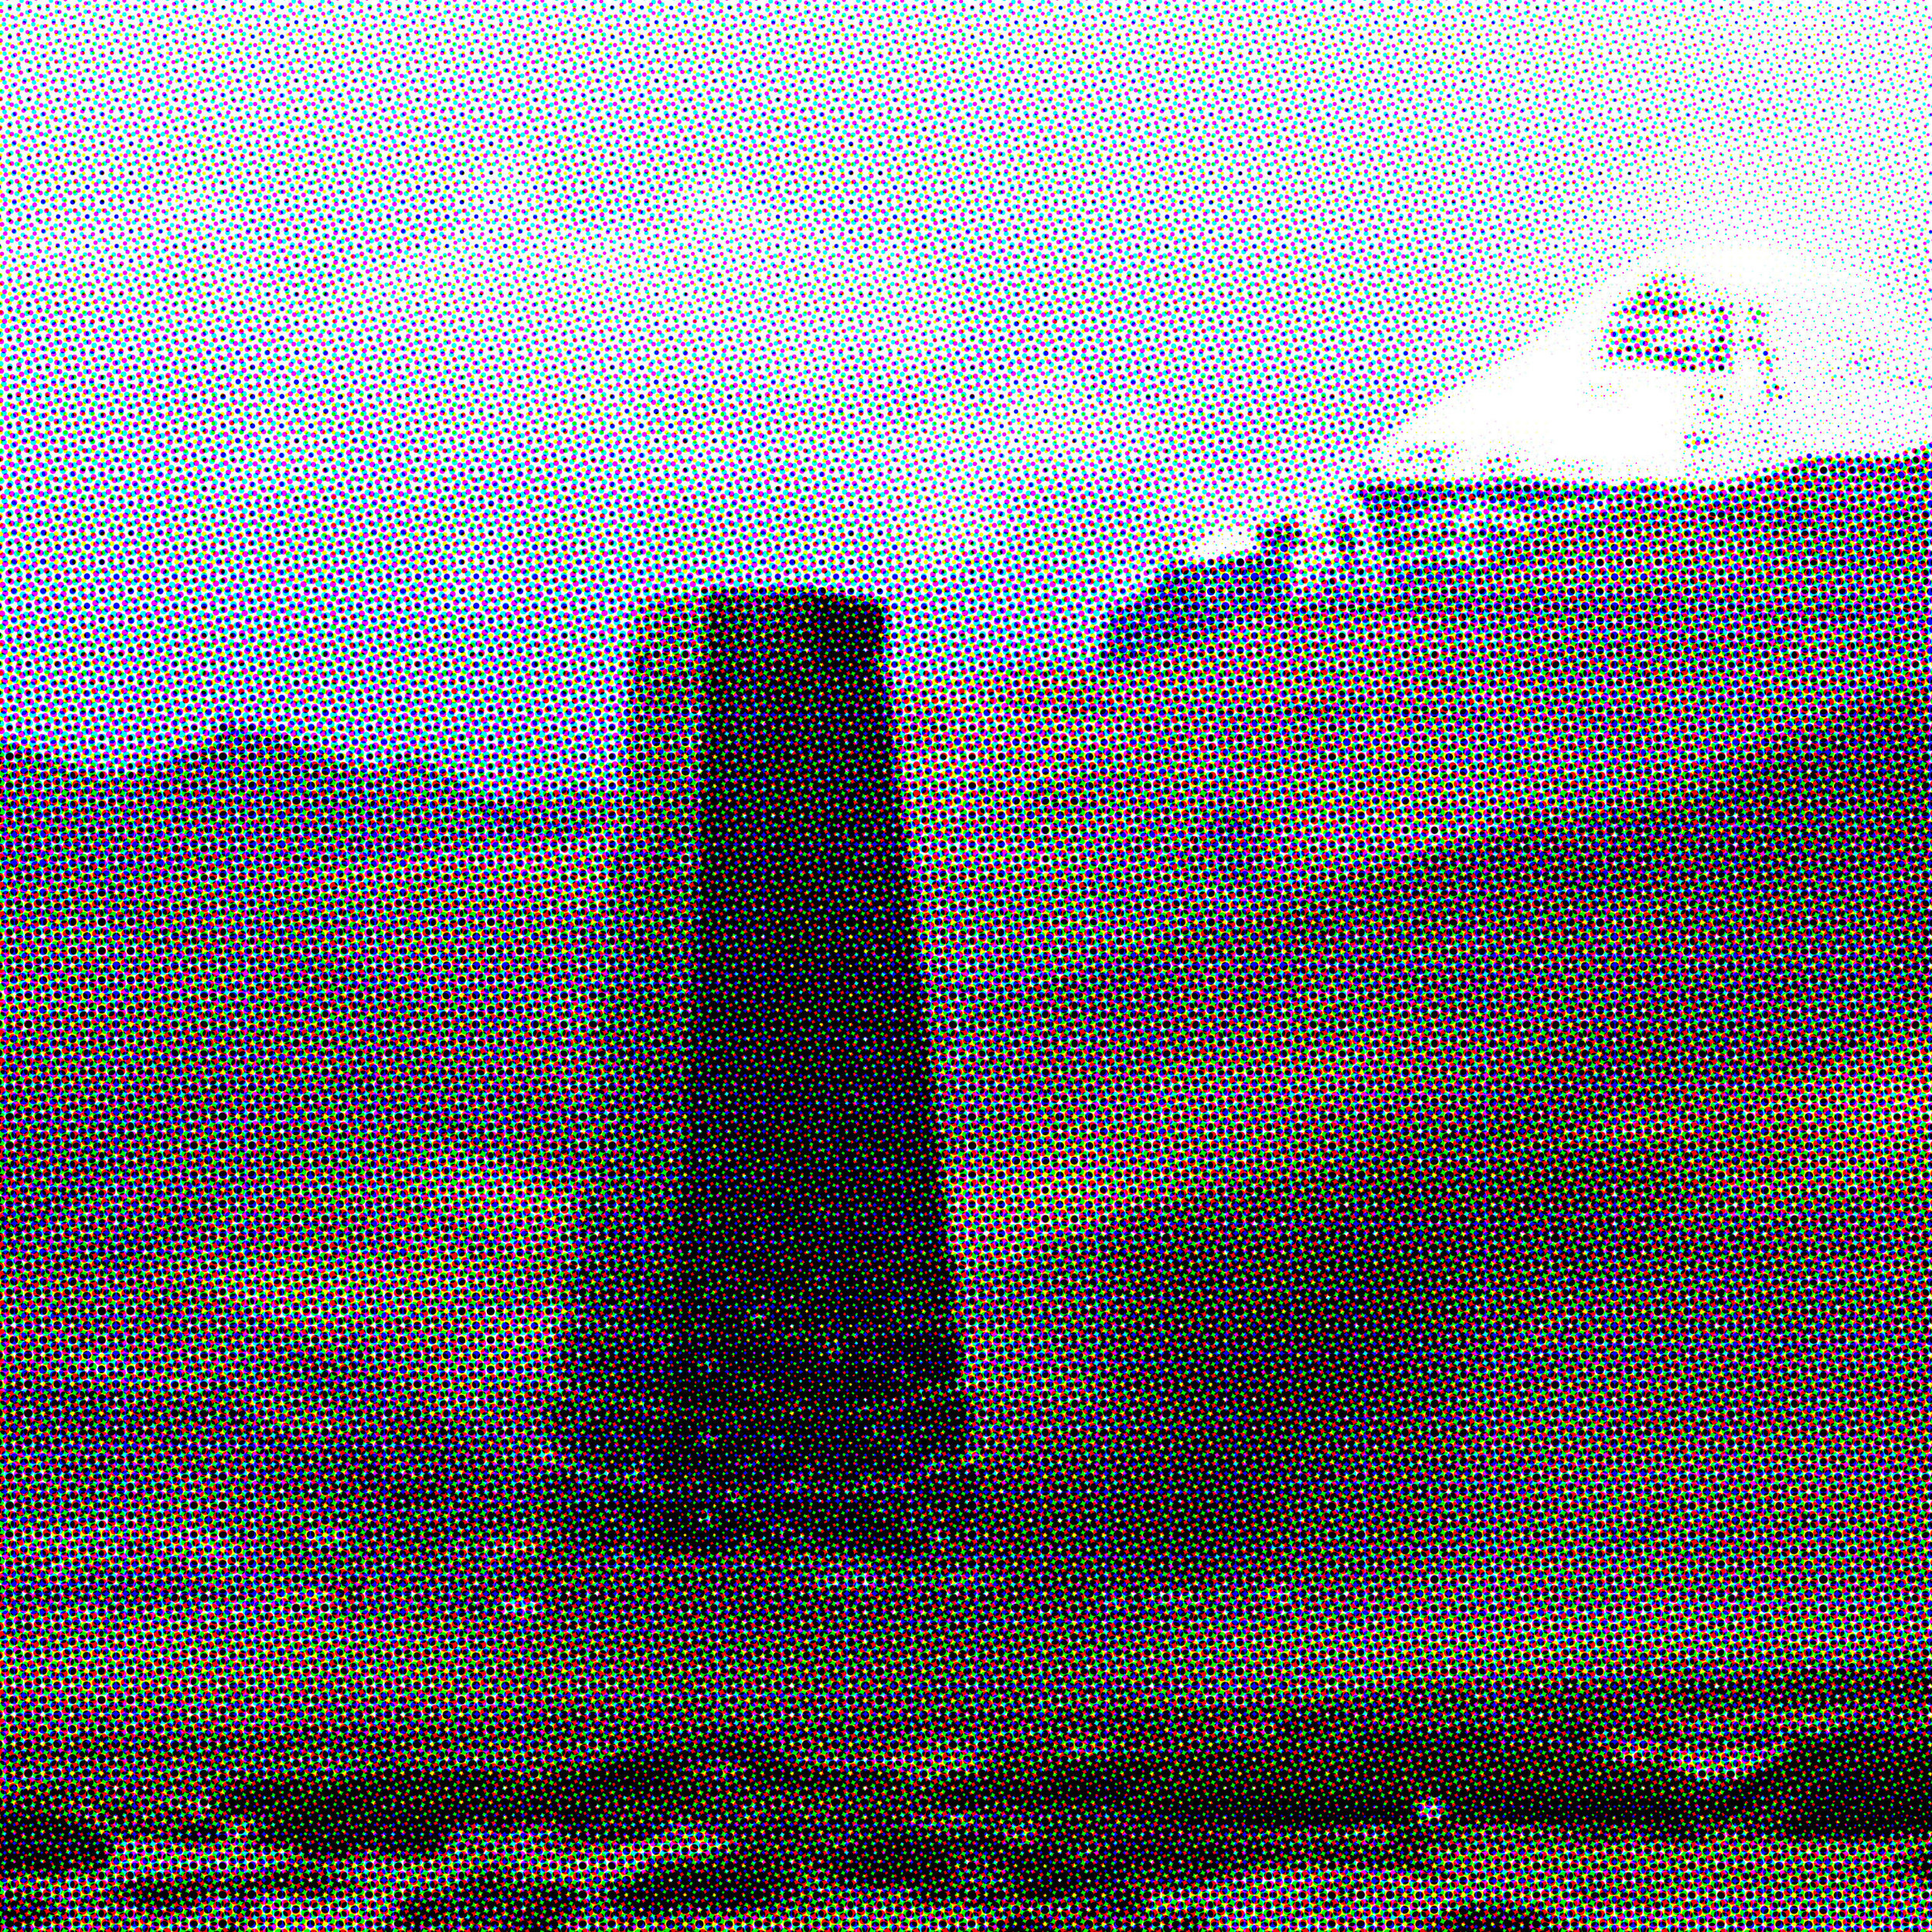 Tower of Kailash